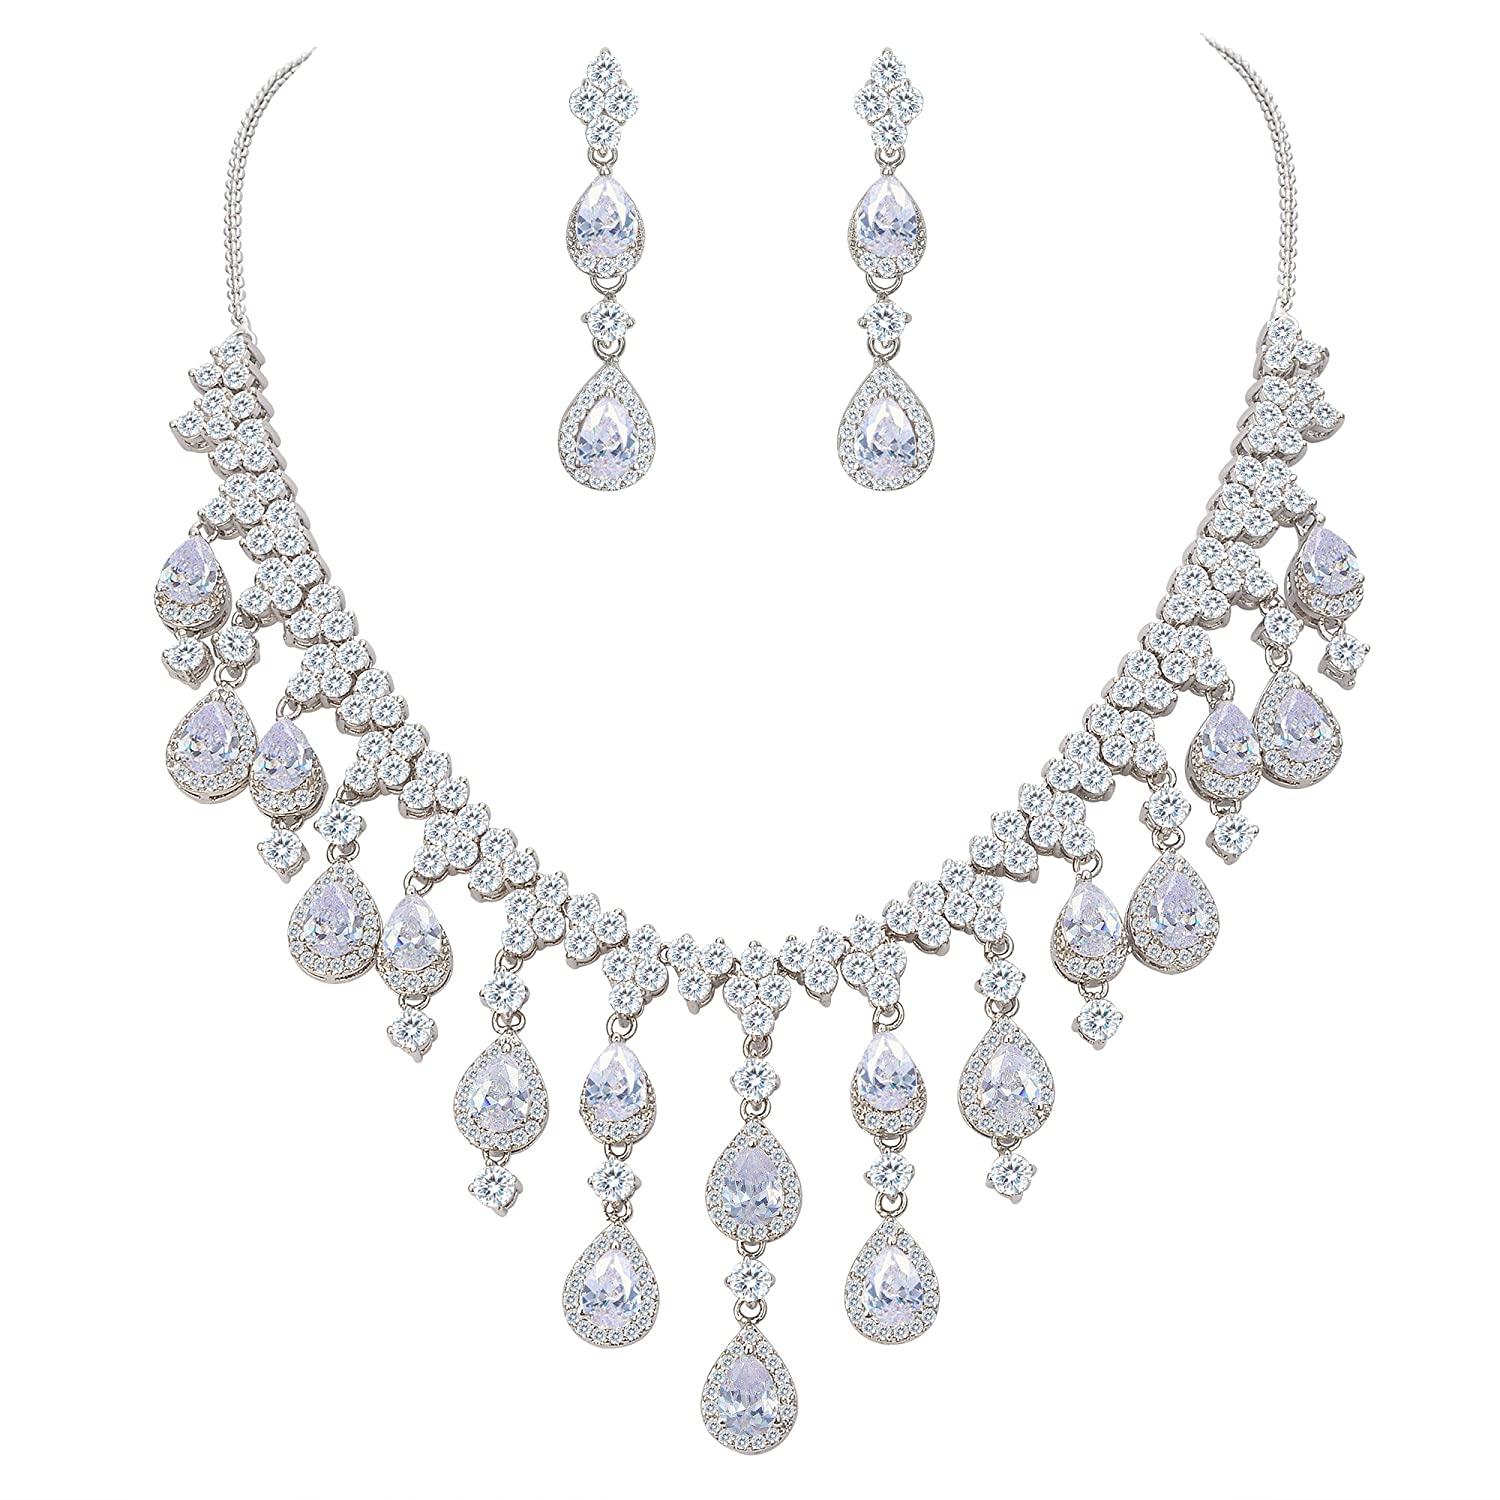 Vintage Style Jewelry, Retro Jewelry EVER FAITH Womens Cubic Zirconia Gorgeous Water Drop Dangle Necklace Earrings Set Silver-Tone $38.99 AT vintagedancer.com